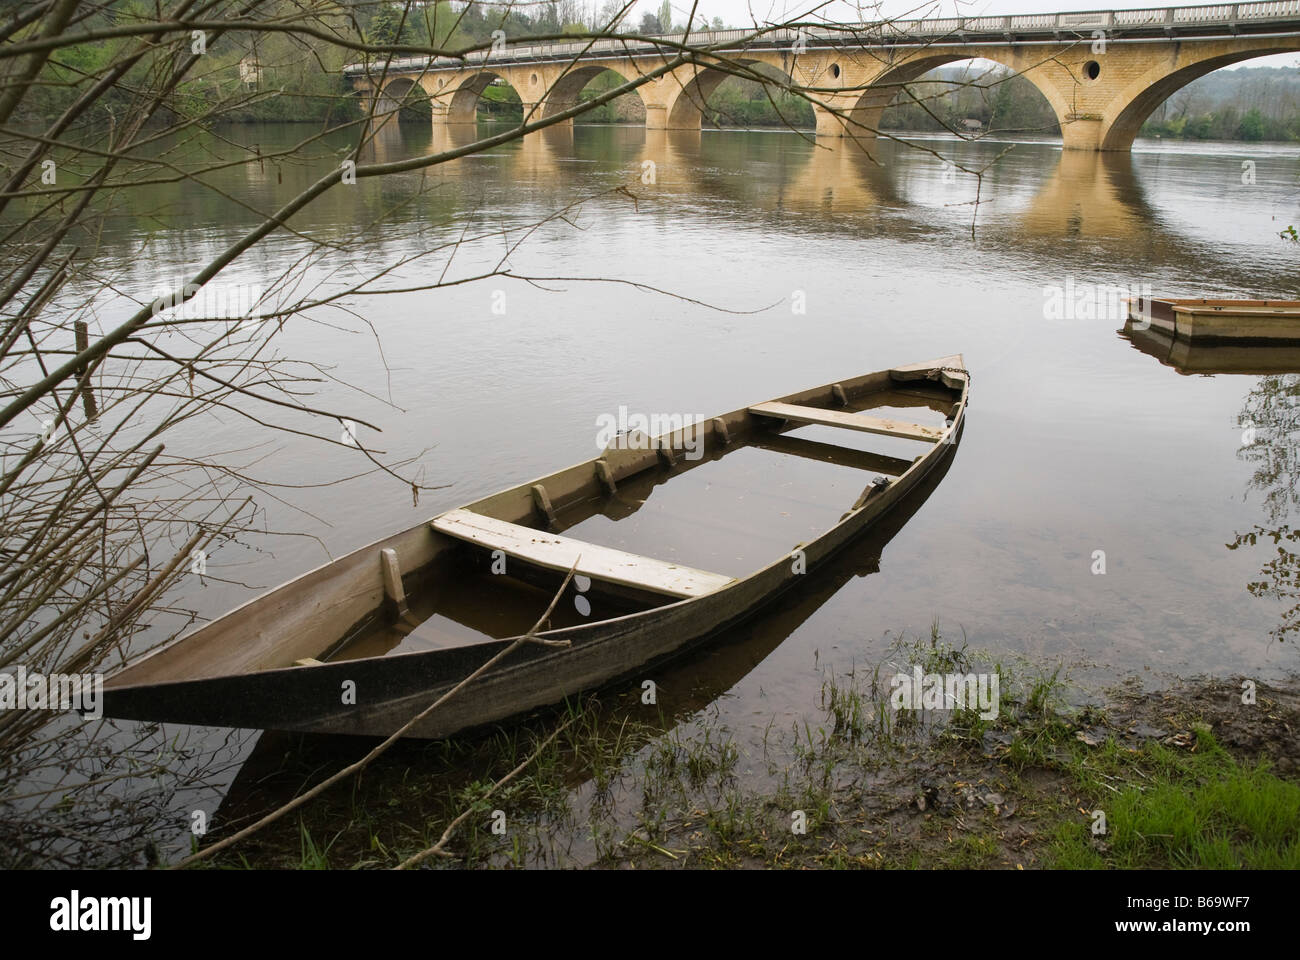 Stock Photo   Sunken, Boat, River, Boats, France, Sunk, Sink, Sinks,  Sinking, Old, Damage, Damaged, Rot, Rotten, Rotting, Dilapidated, Wreck